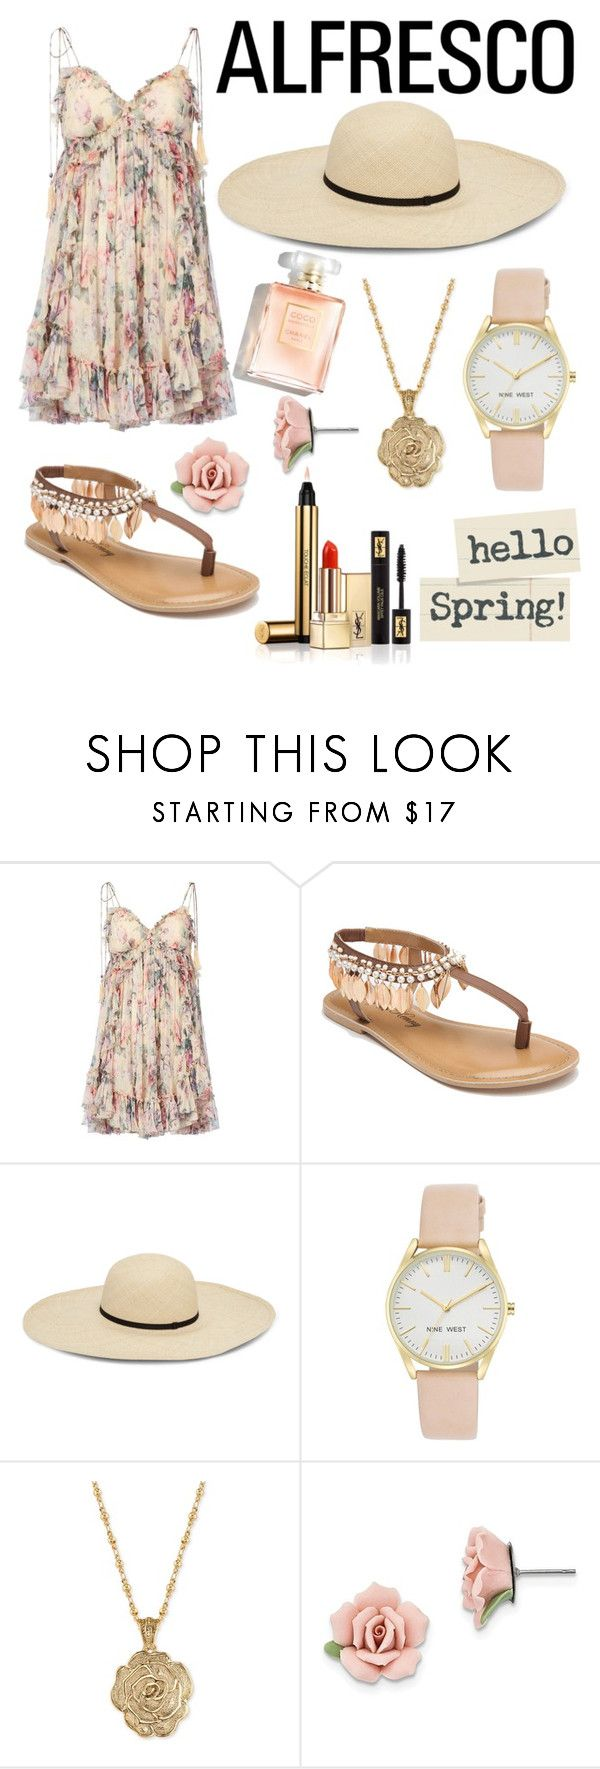 """Hello Spring"" by rollingstonequeen ❤ liked on Polyvore featuring Zimmermann, Penny Loves Kenny, Nine West, 2028, 1928 and Yves Saint Laurent"